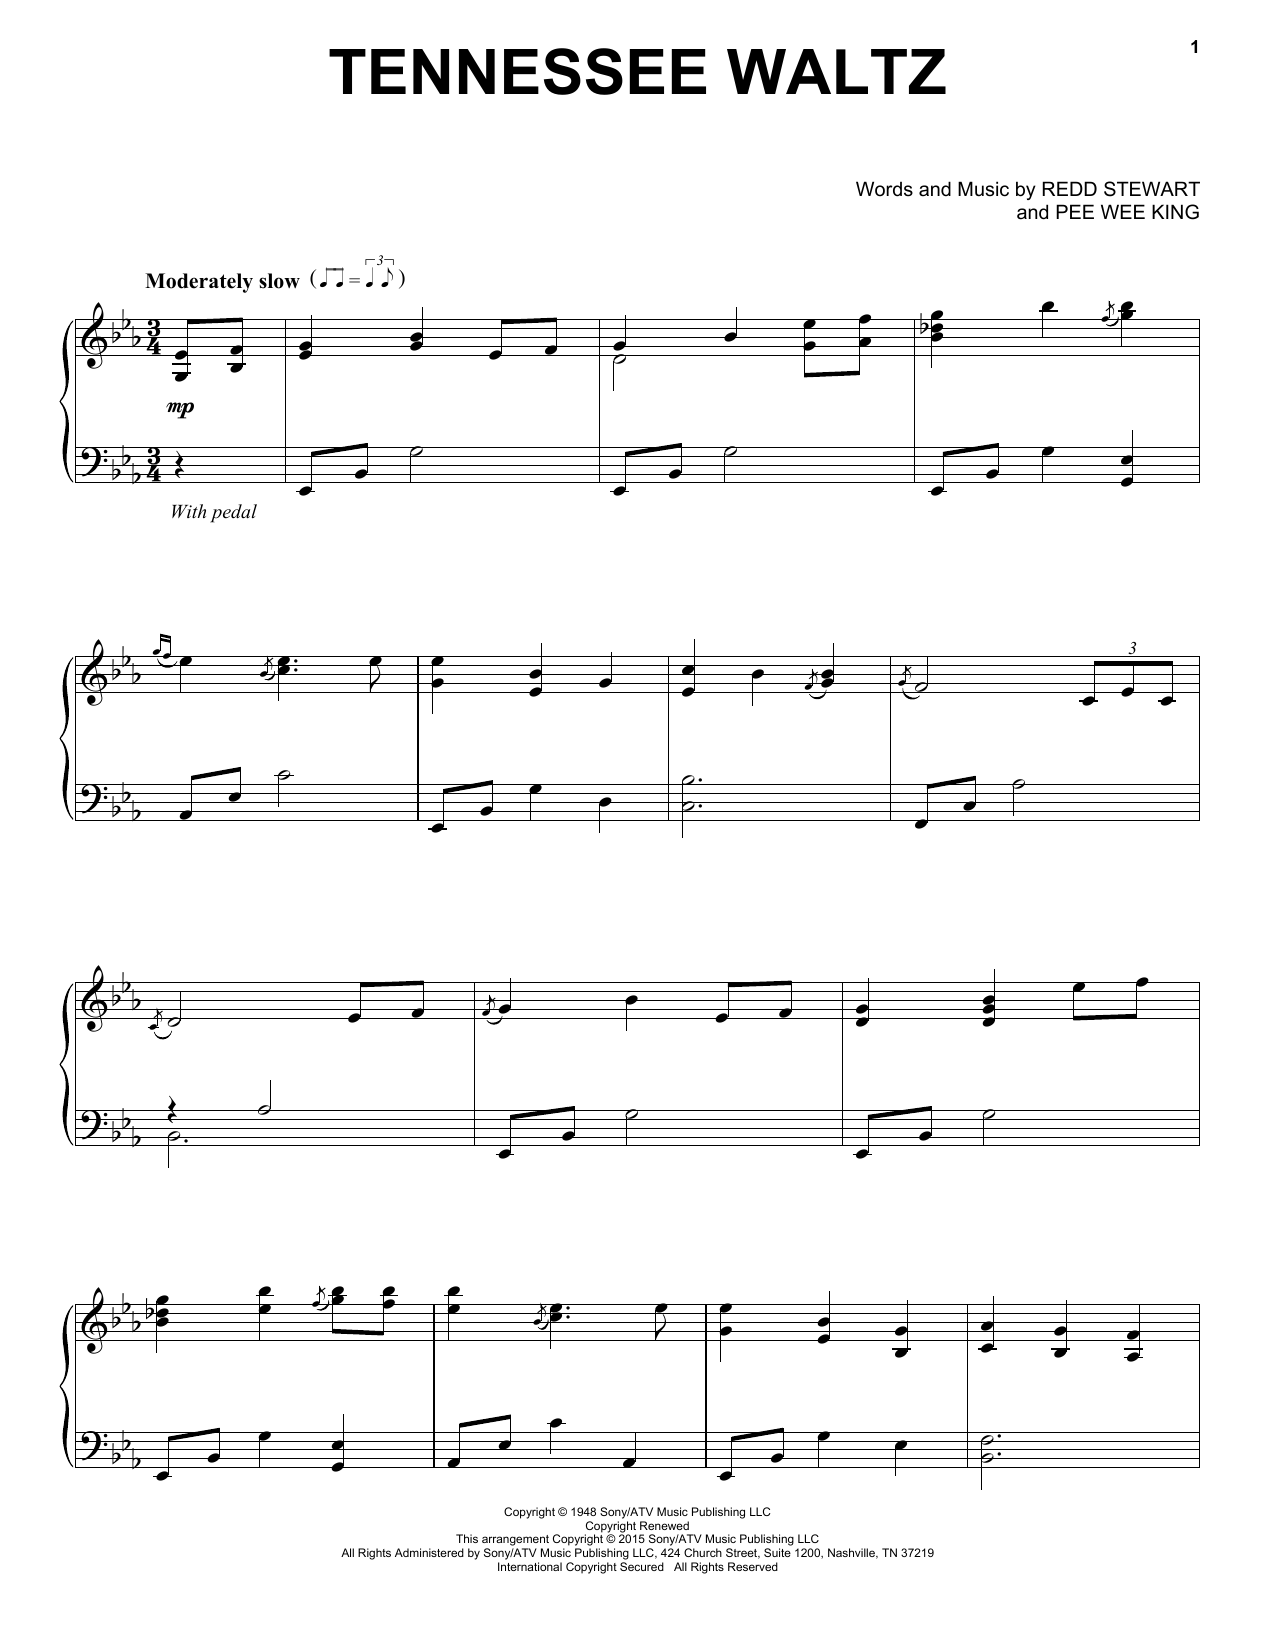 Patty Page Tennessee Waltz sheet music notes and chords. Download Printable PDF.